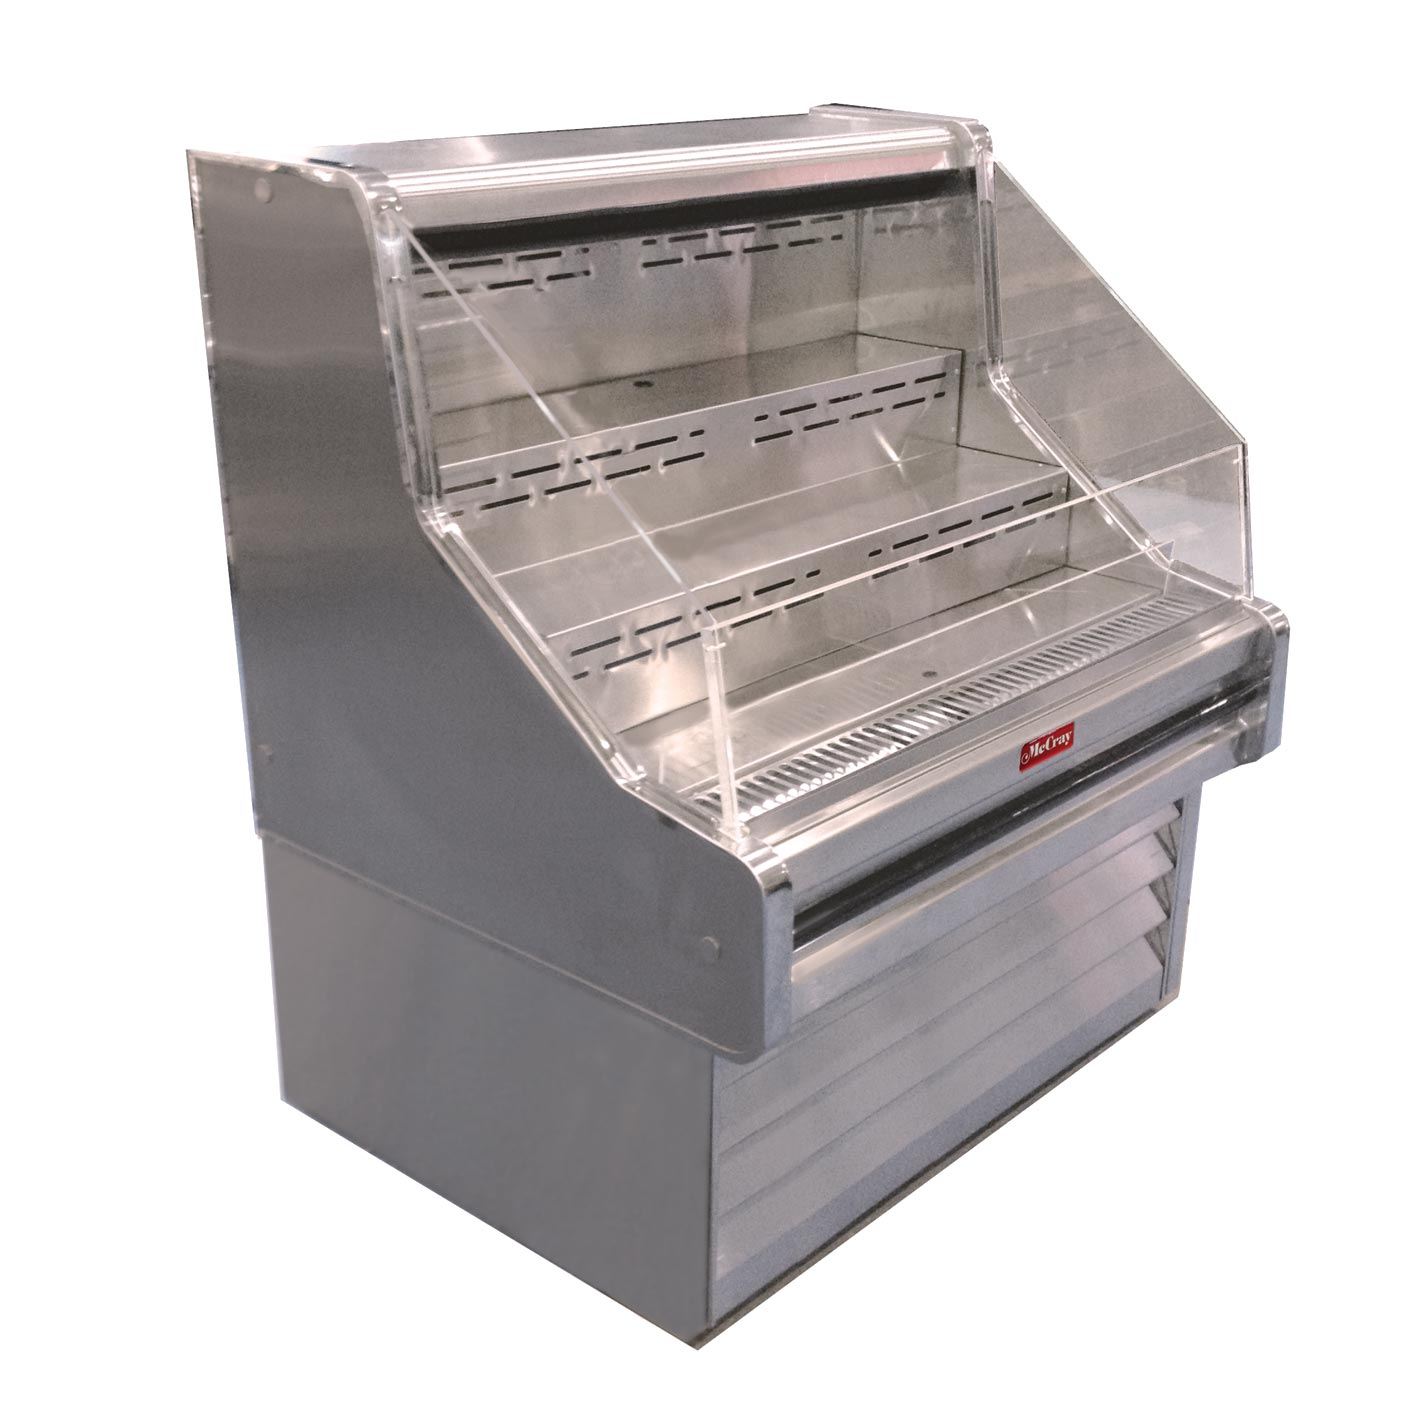 Howard-McCray R-OS35E-3-LED merchandiser, open refrigerated display